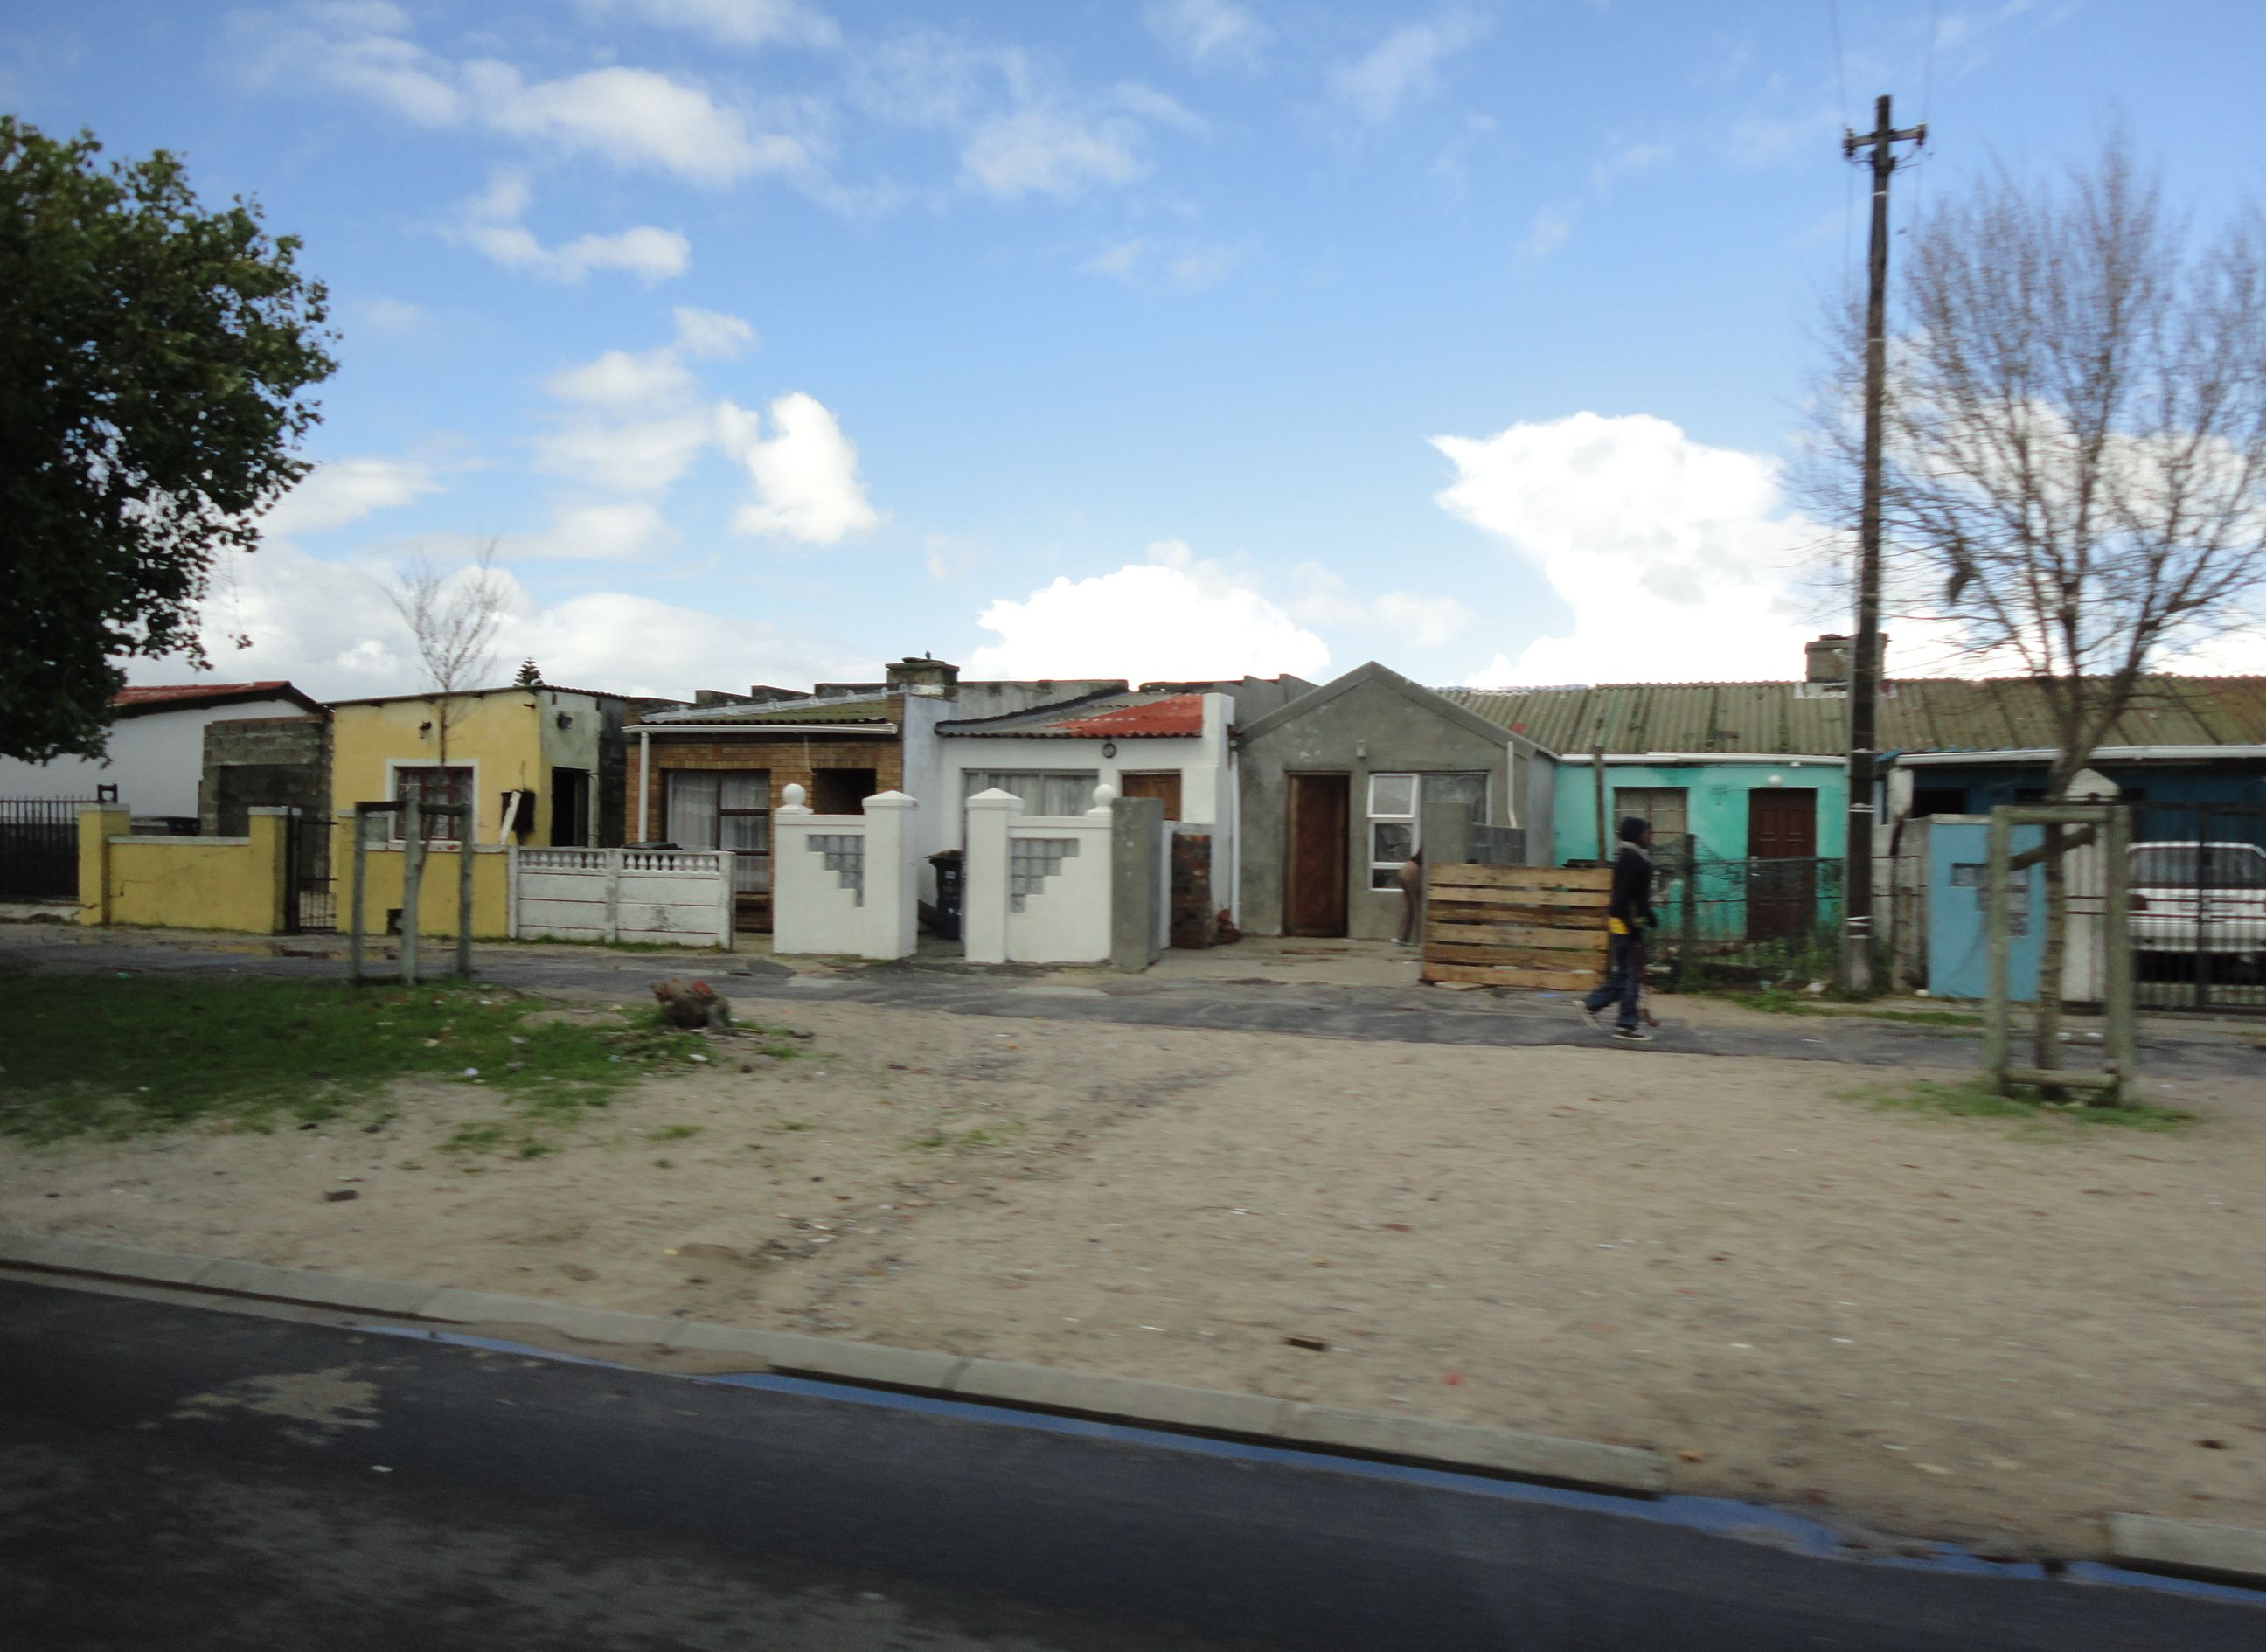 Some regular houses left and an apartment block by one of our stops both are in langa a black township